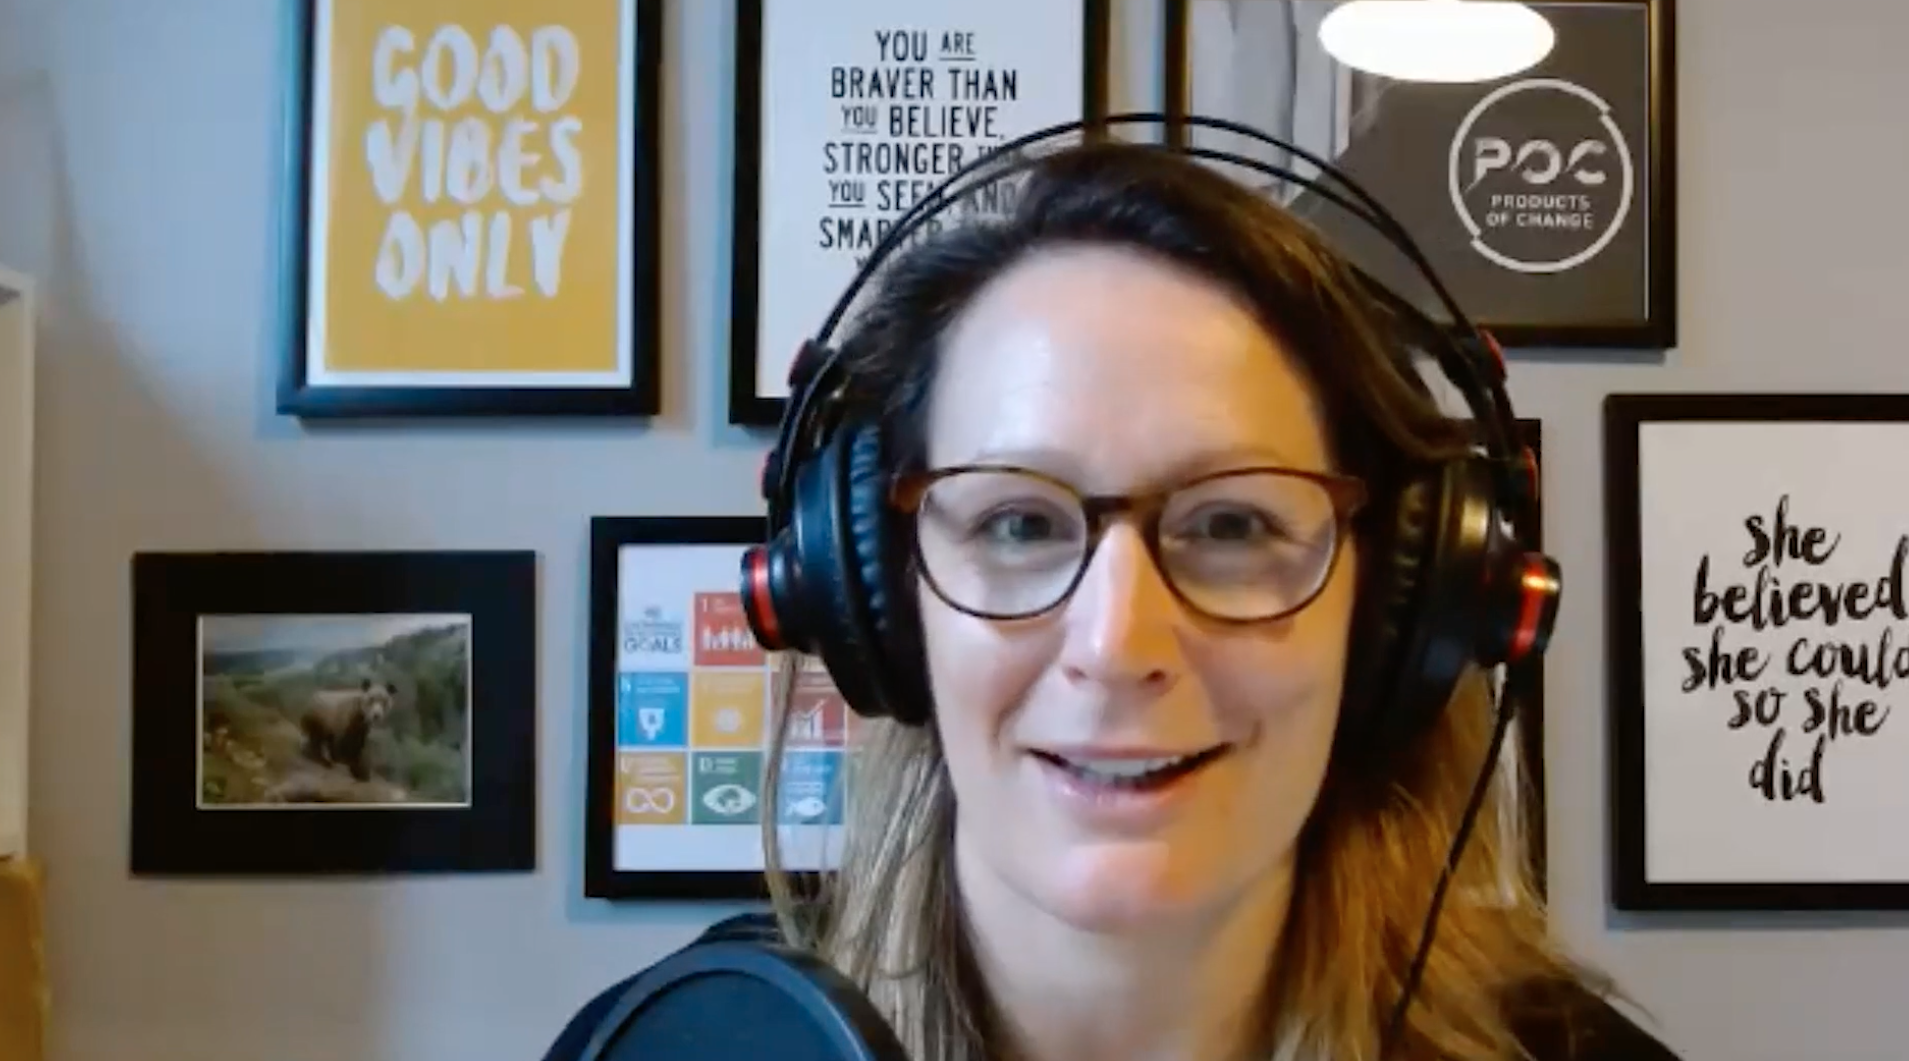 Above: Helena Mansell-Stopher, on one of the many videos on the site. As founder of POC, Helena is leading the way with Products of Change, championing protecting the planet while being aware of the commercial needs of business.